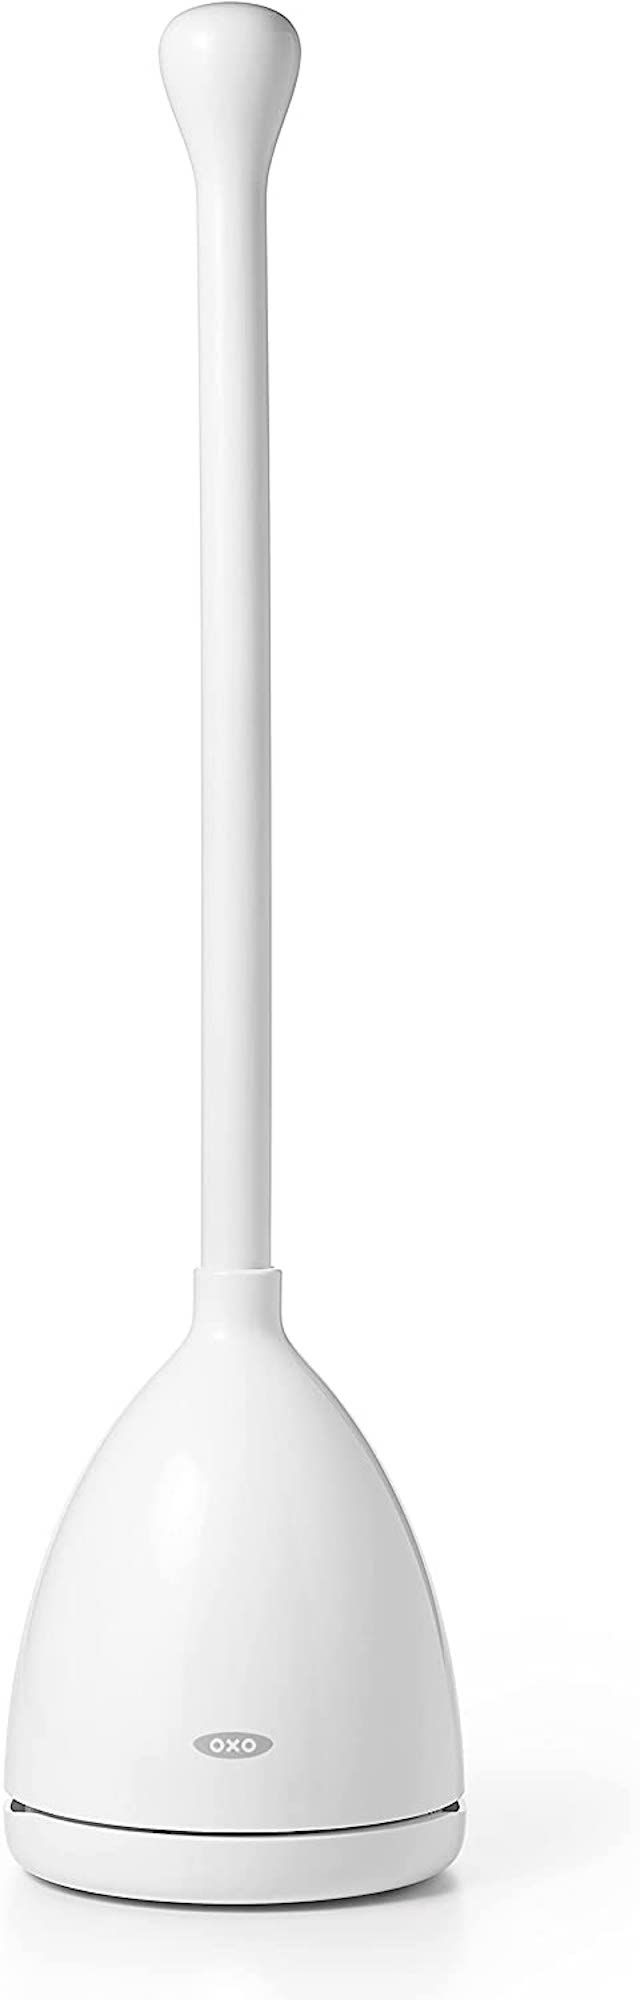 Good Grips Toilet Plunger with Canister